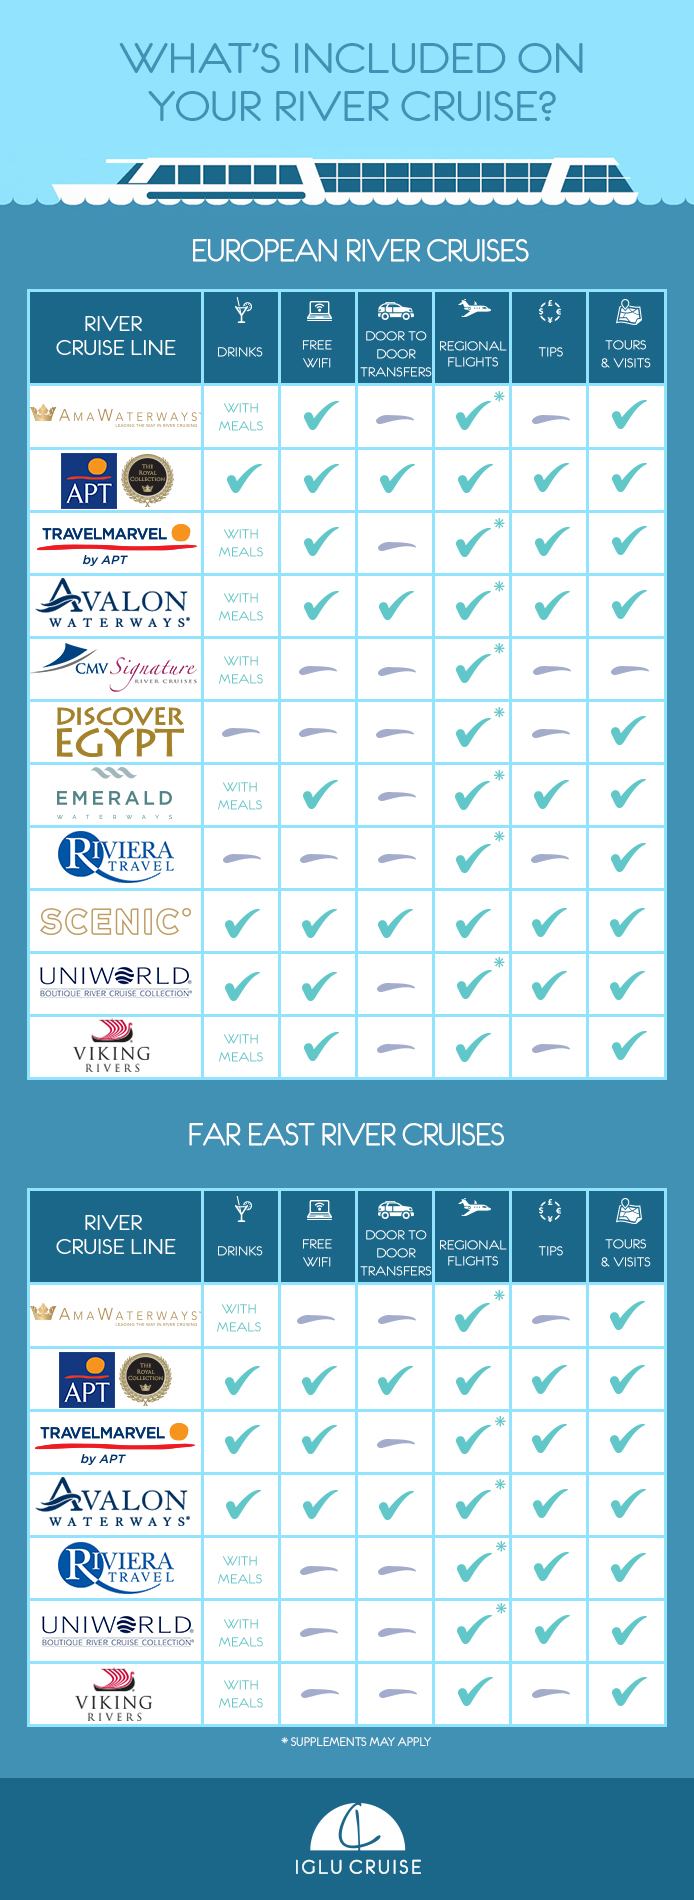 whats included on your river cruise